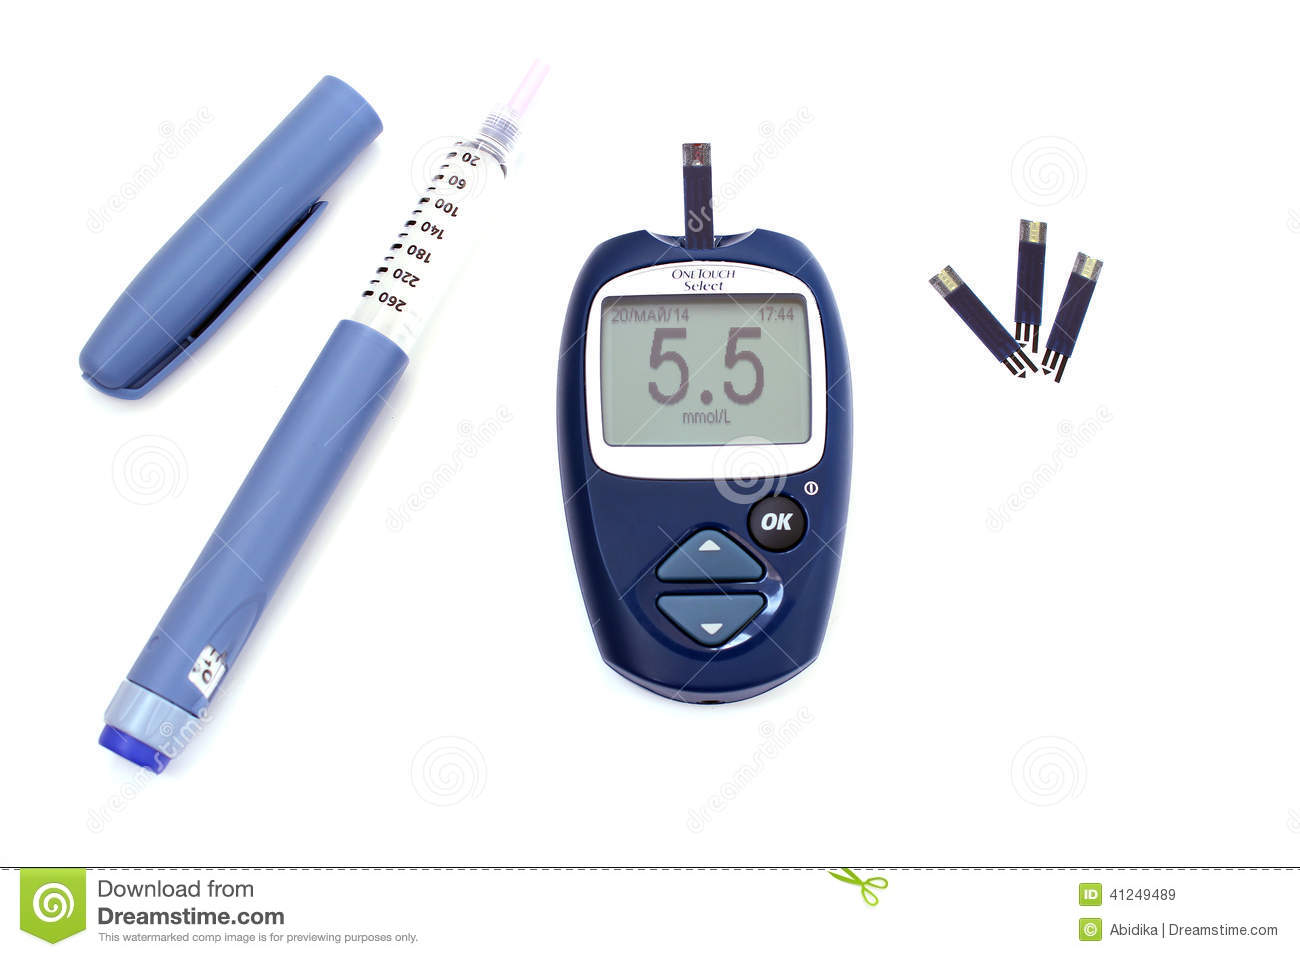 glucose meters essay Read this essay on meter fundamentals come browse our large digital warehouse of free sample essays get the knowledge you need in order to pass your classes and more.